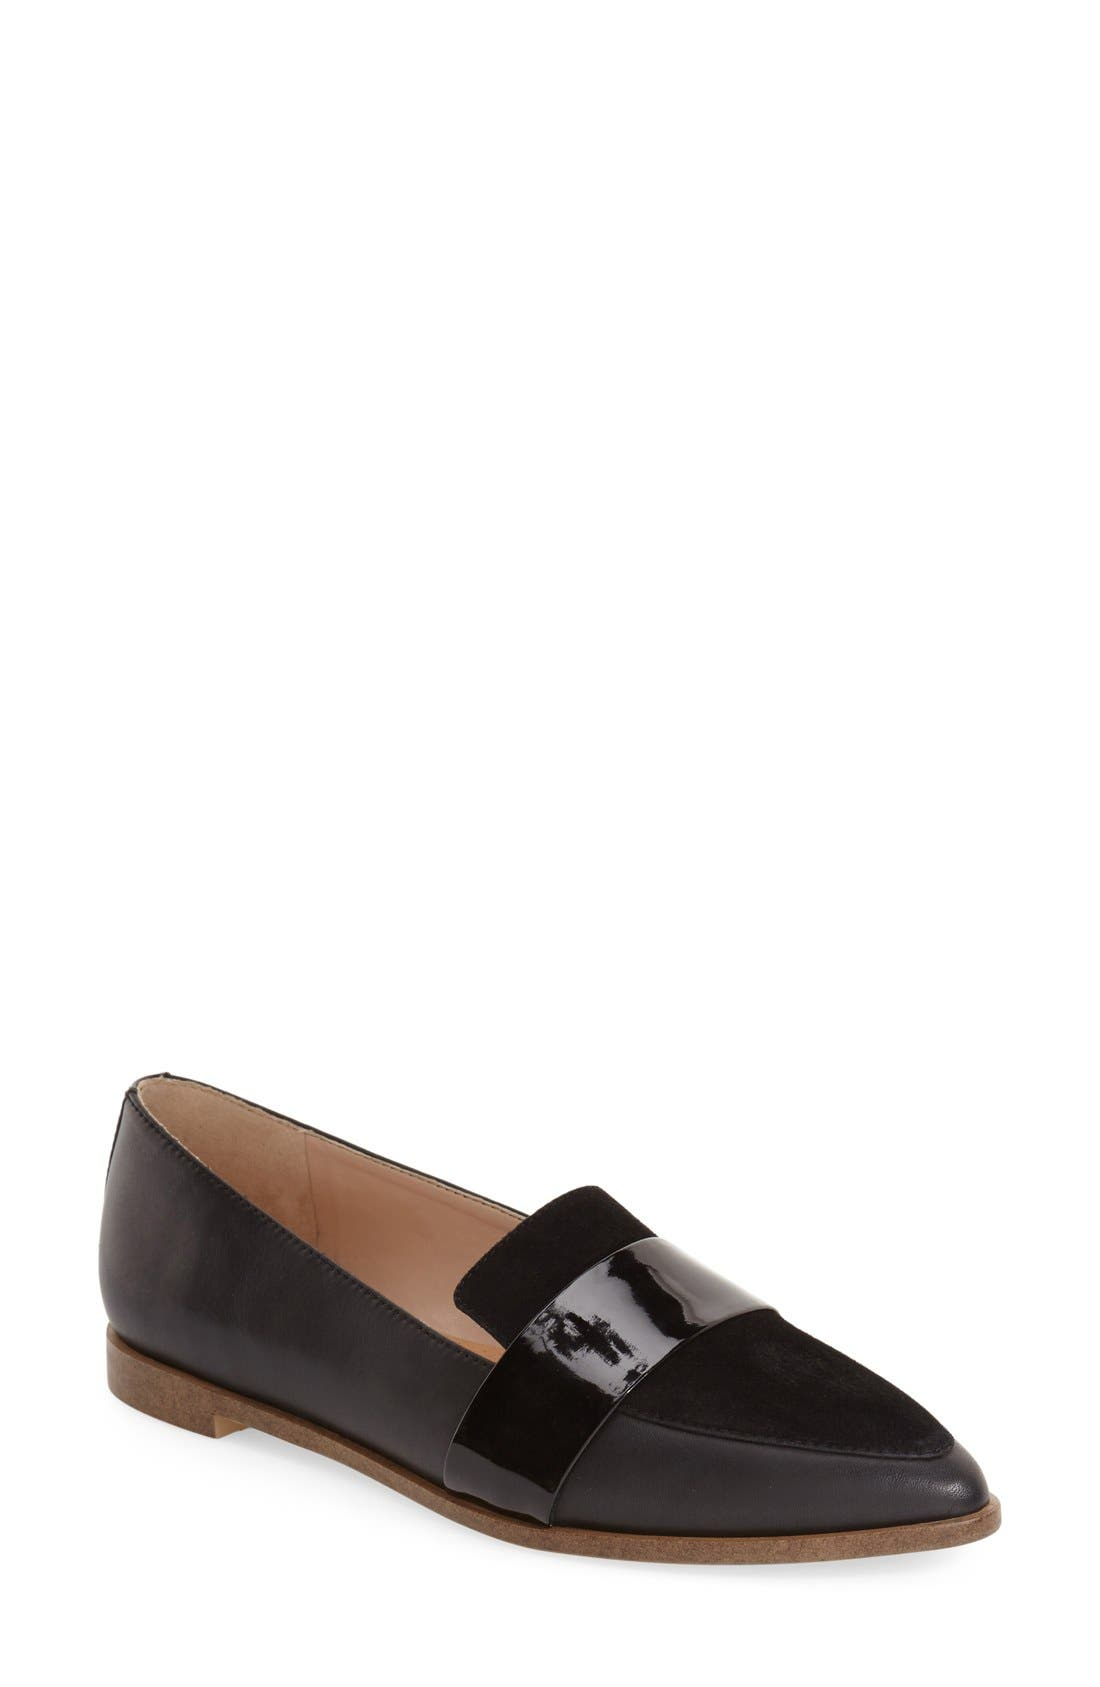 Dr. Scholl's 'Ashah' Pointed Toe Flat (Women)